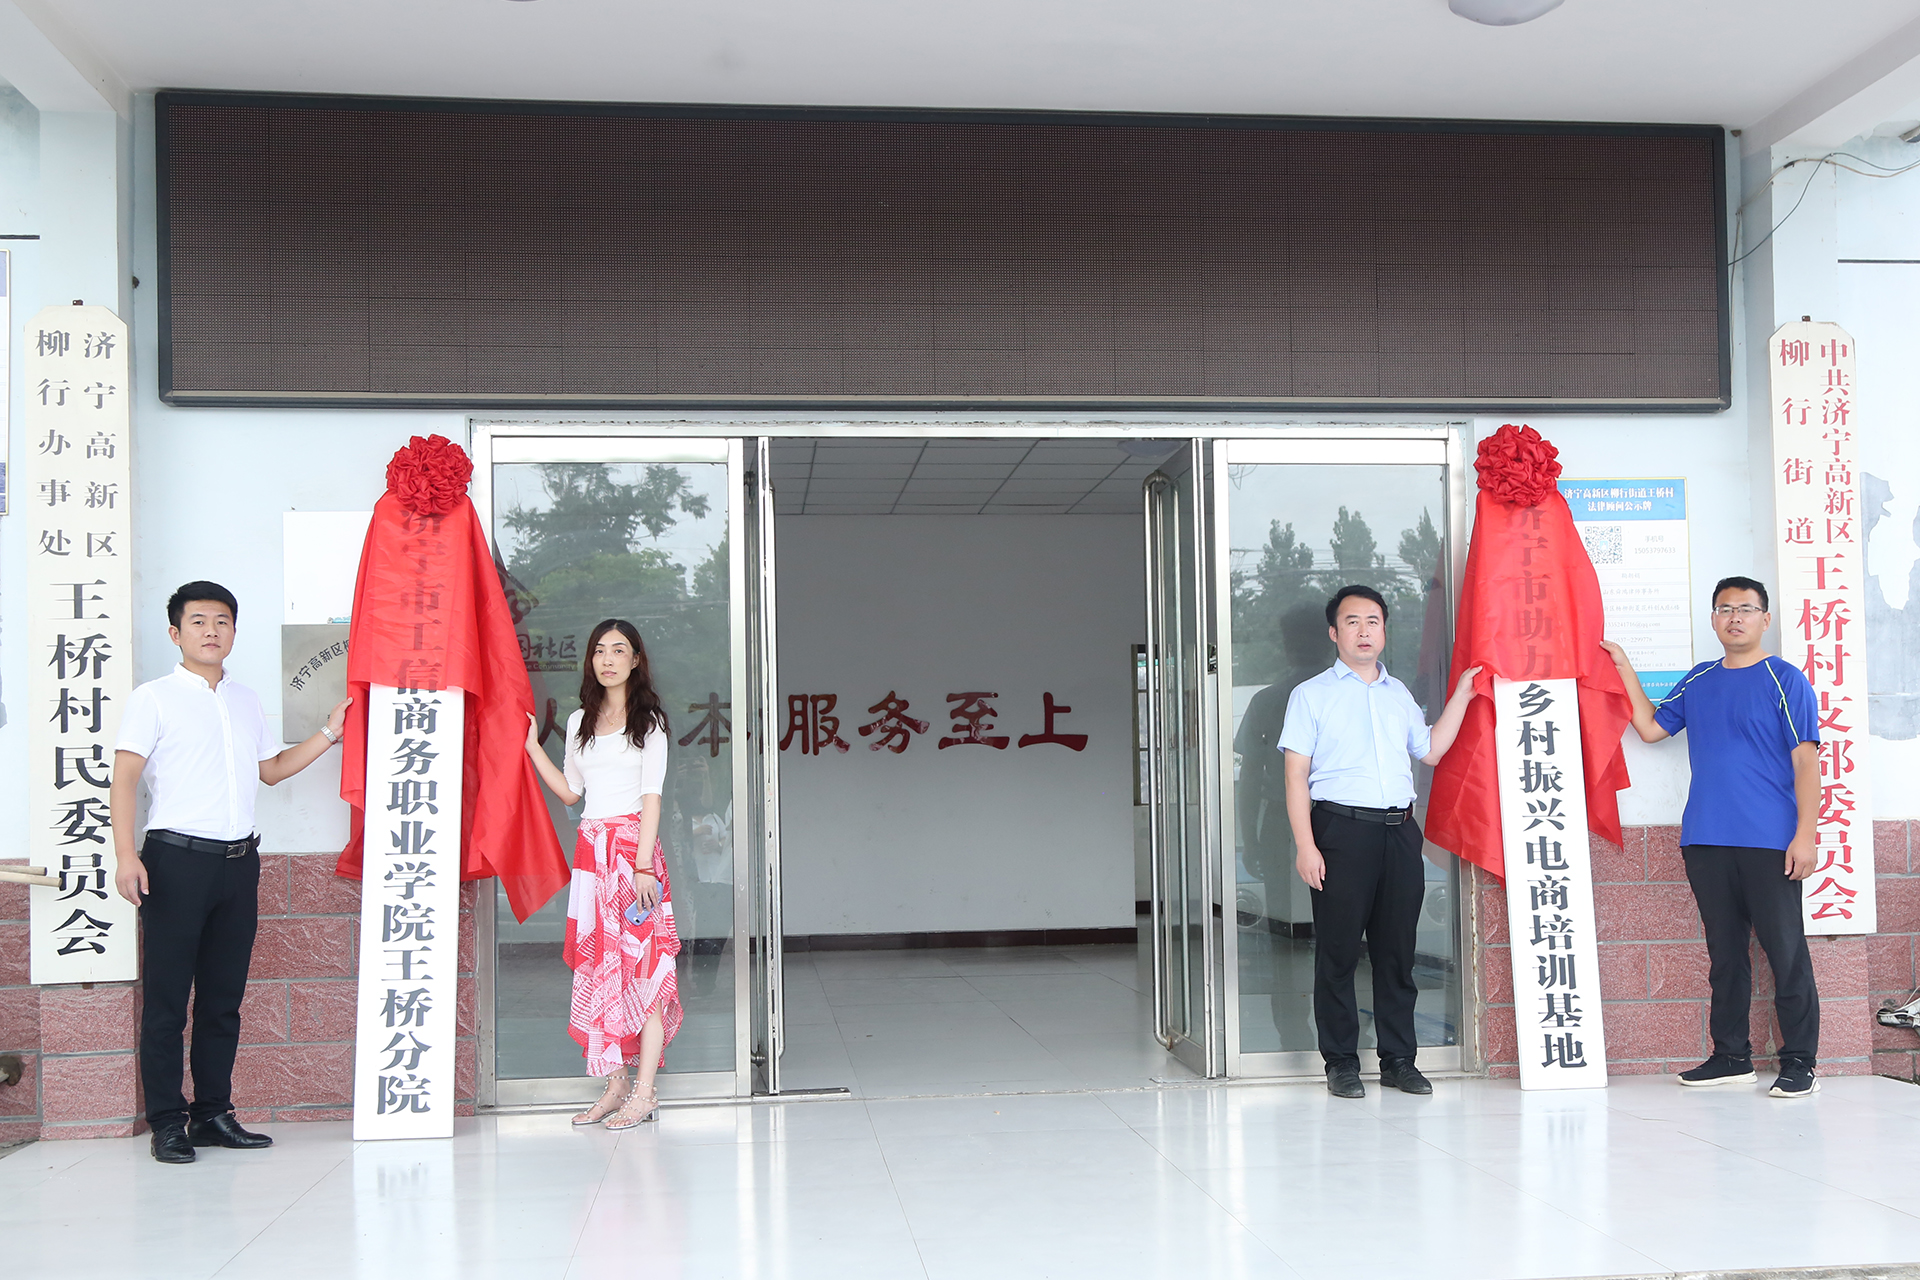 Congratulations To The Opening Of Liucun Branch And Wangqiao Branch Of Jining Gongxin Business Vocational College Under China Coal Group